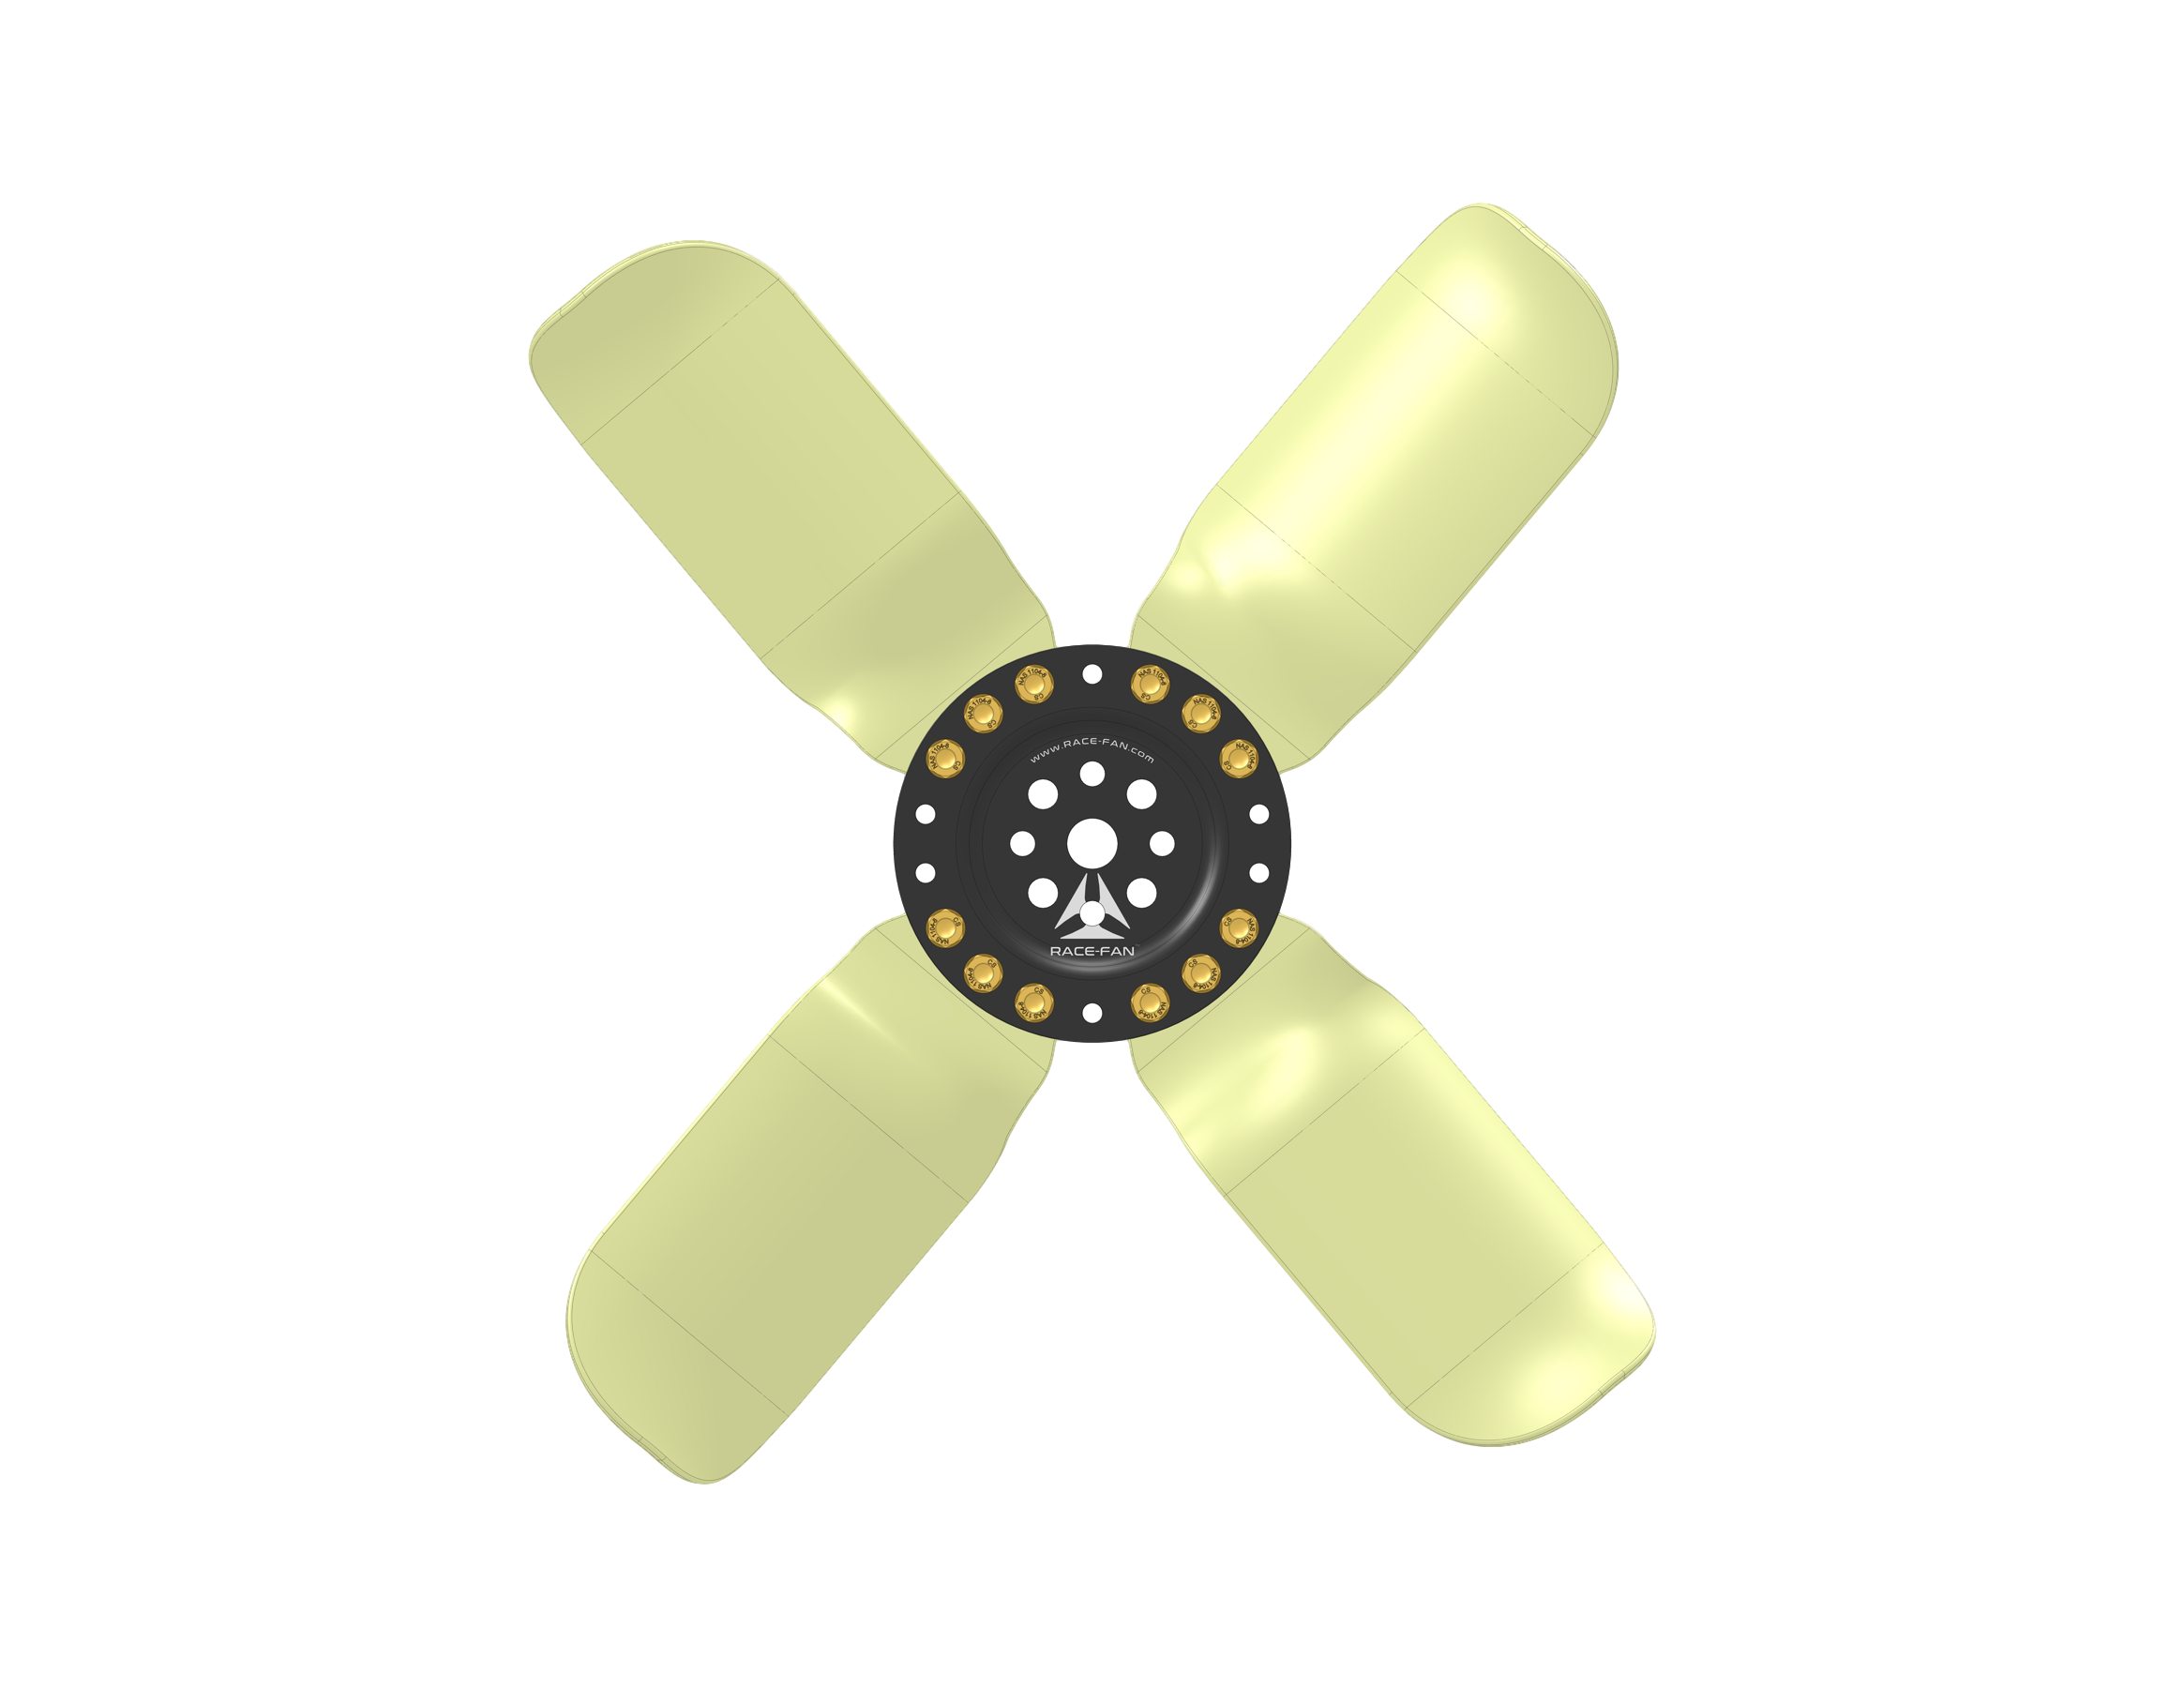 Race-Fan Assembly 19-Inch - Shaded - 4-Blade Front White 02 1800px_clipped_rev_1.png